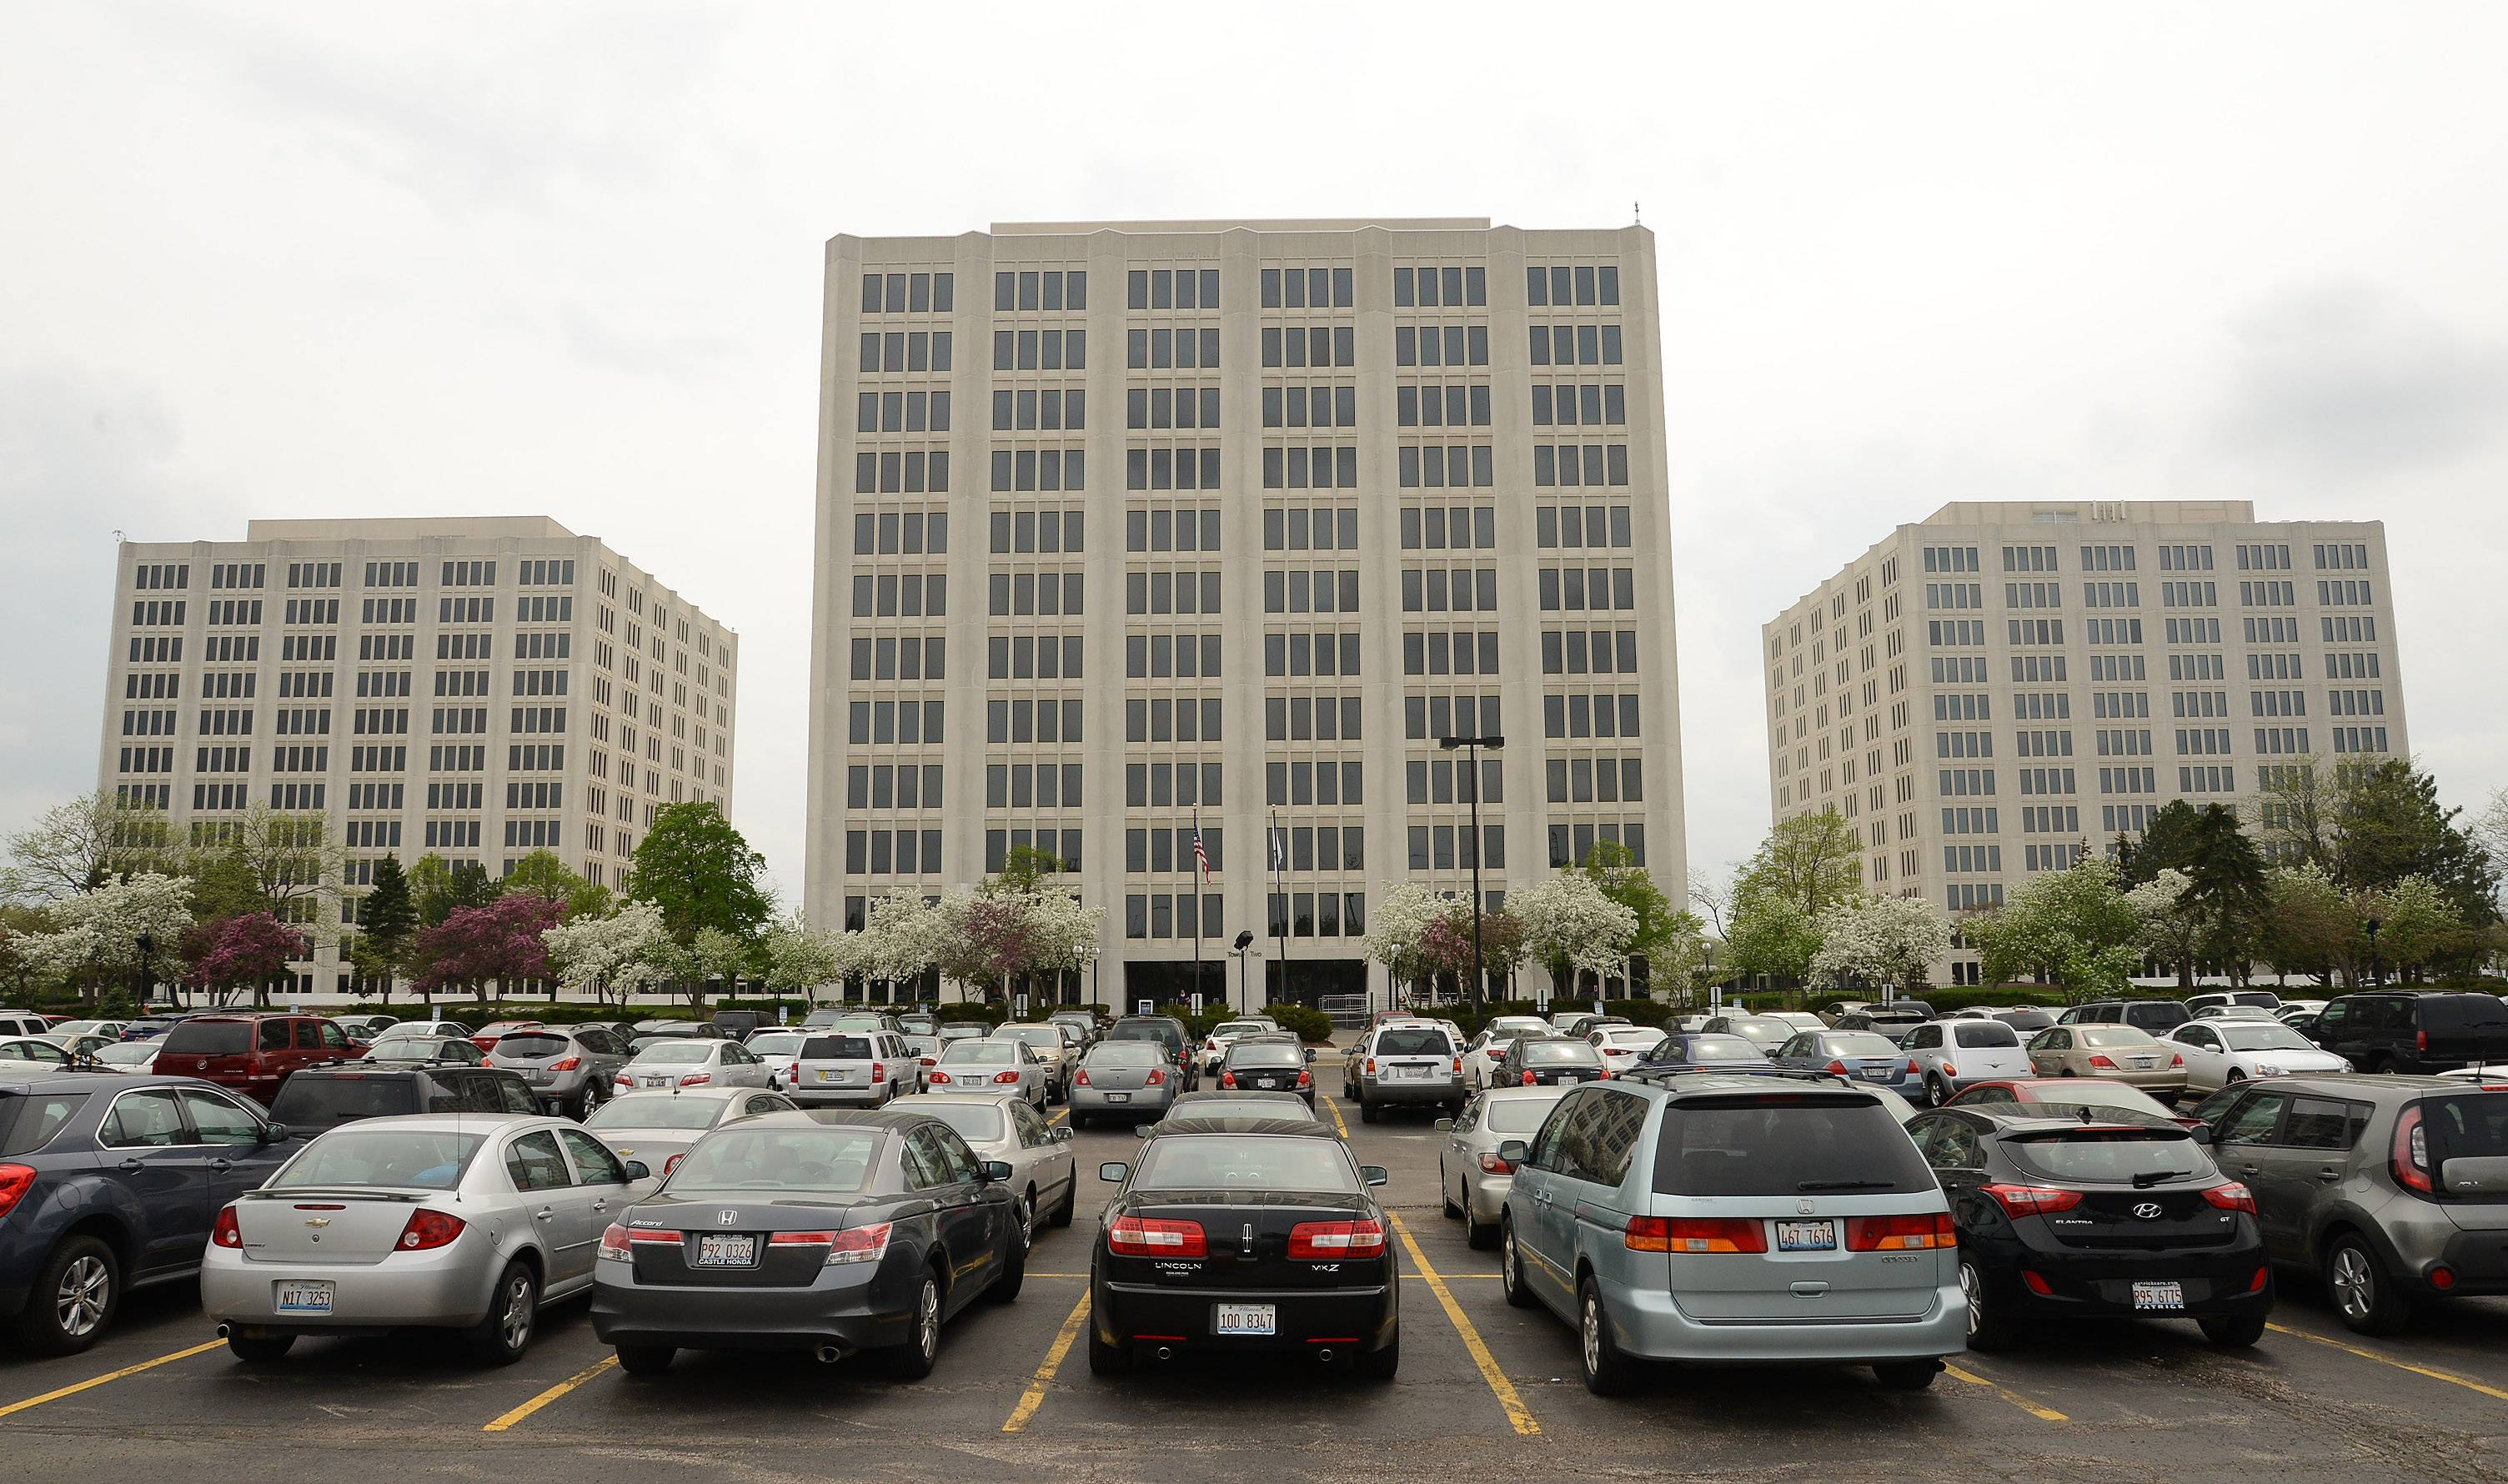 The new owners of Continental Towers in Rolling Meadows plan to refurbish the appearance of the complex, improve the landscaping and build a new parking structure. Rolling Meadows officials hope the changes attract more tenants to the 12-story towers.